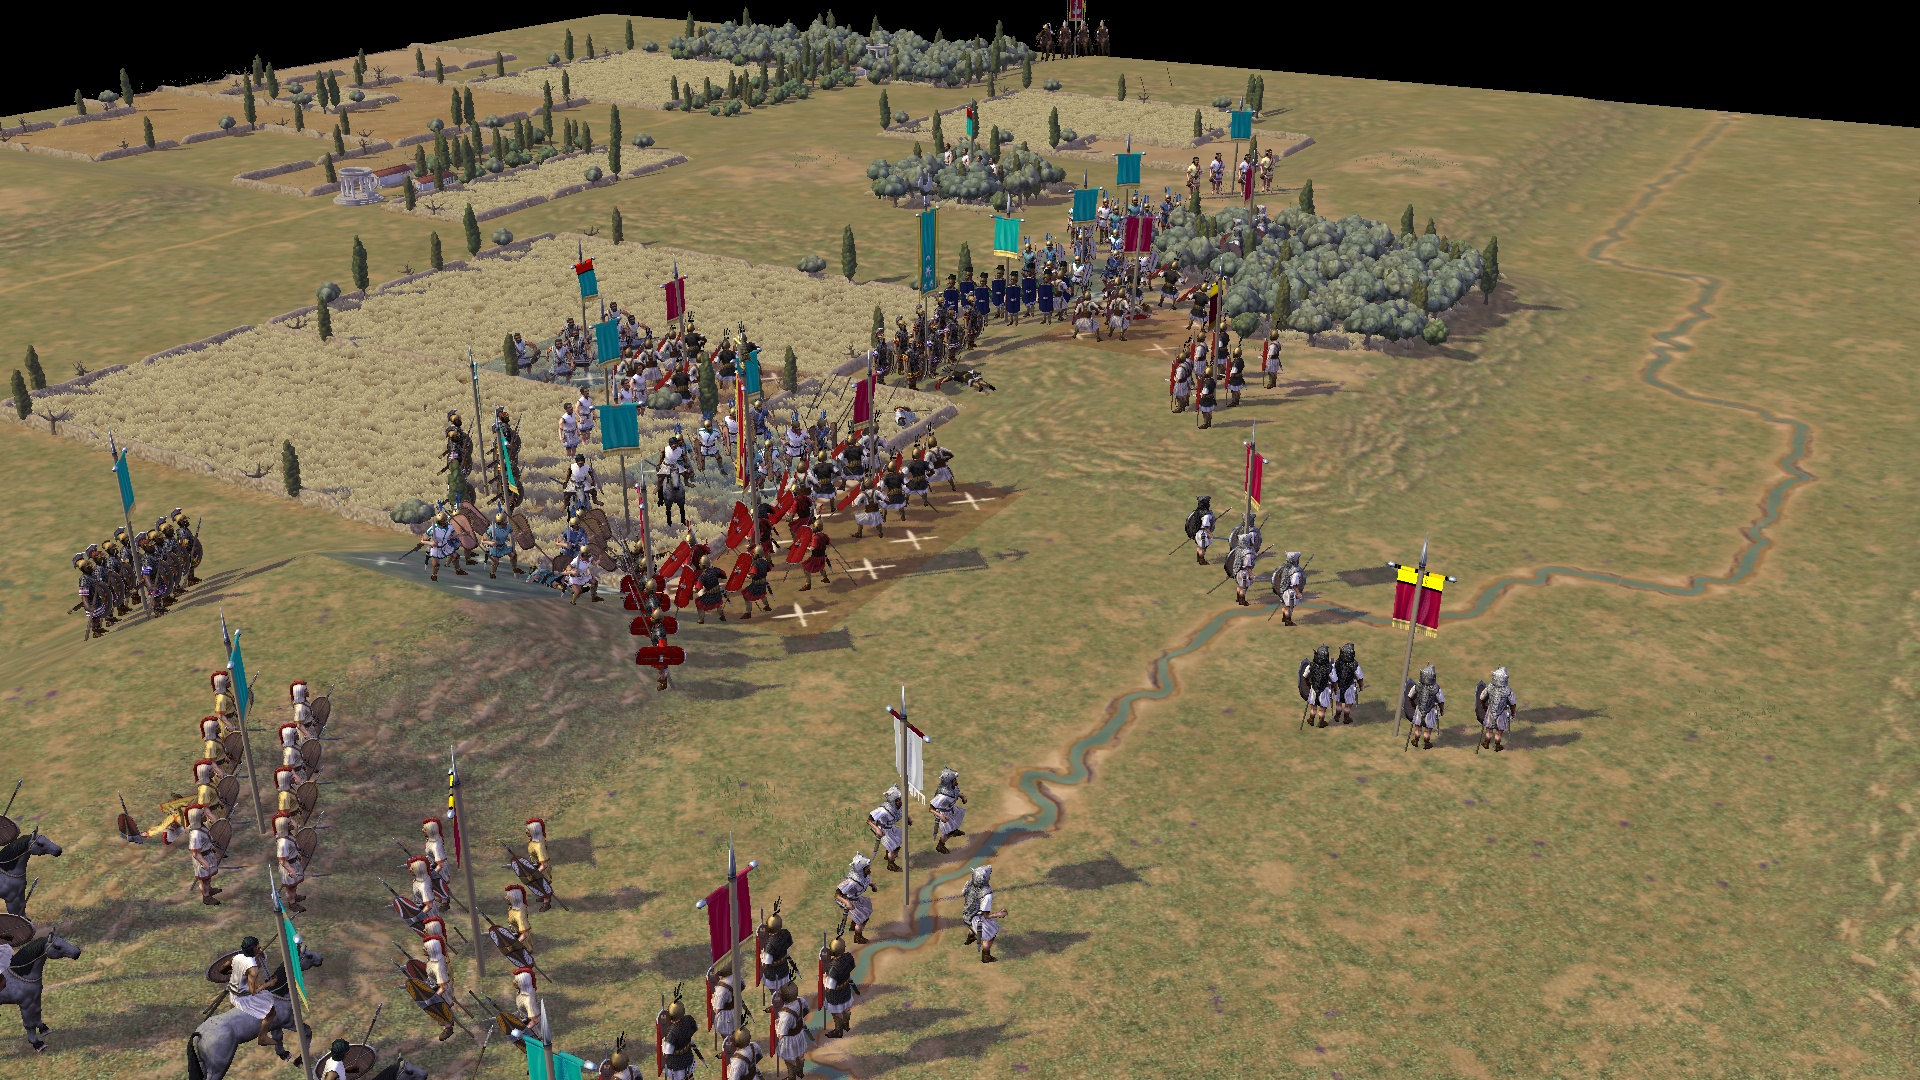 download field of glory 2 cracked by skidrow rts strategy simulation war games include all dlc and latest update mirrorace multiup